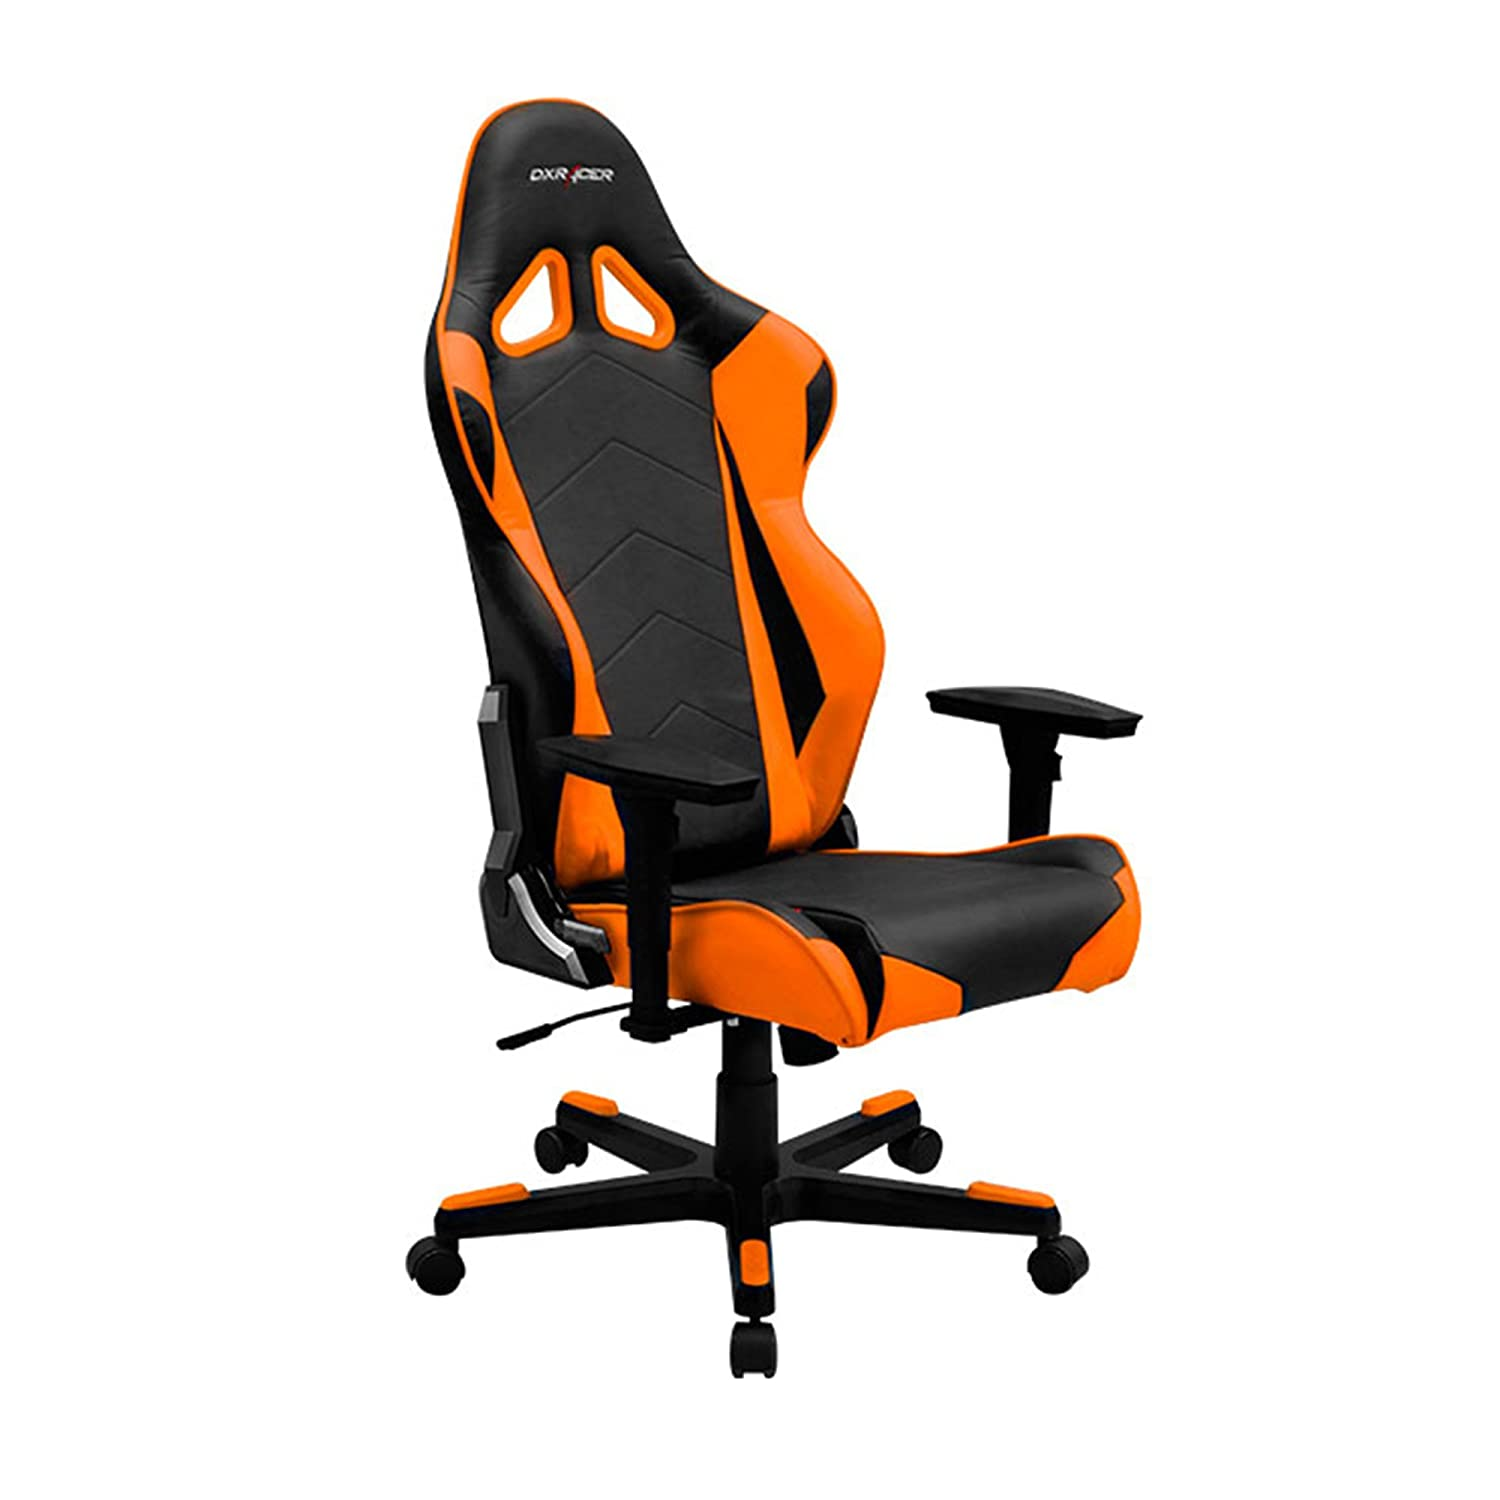 Charmant Amazon.com: DXRacer RE0/NO Black Orange Racing Bucket Seat Office Chair  Ergonomic With Lumbar Support (Orange): Kitchen U0026 Dining